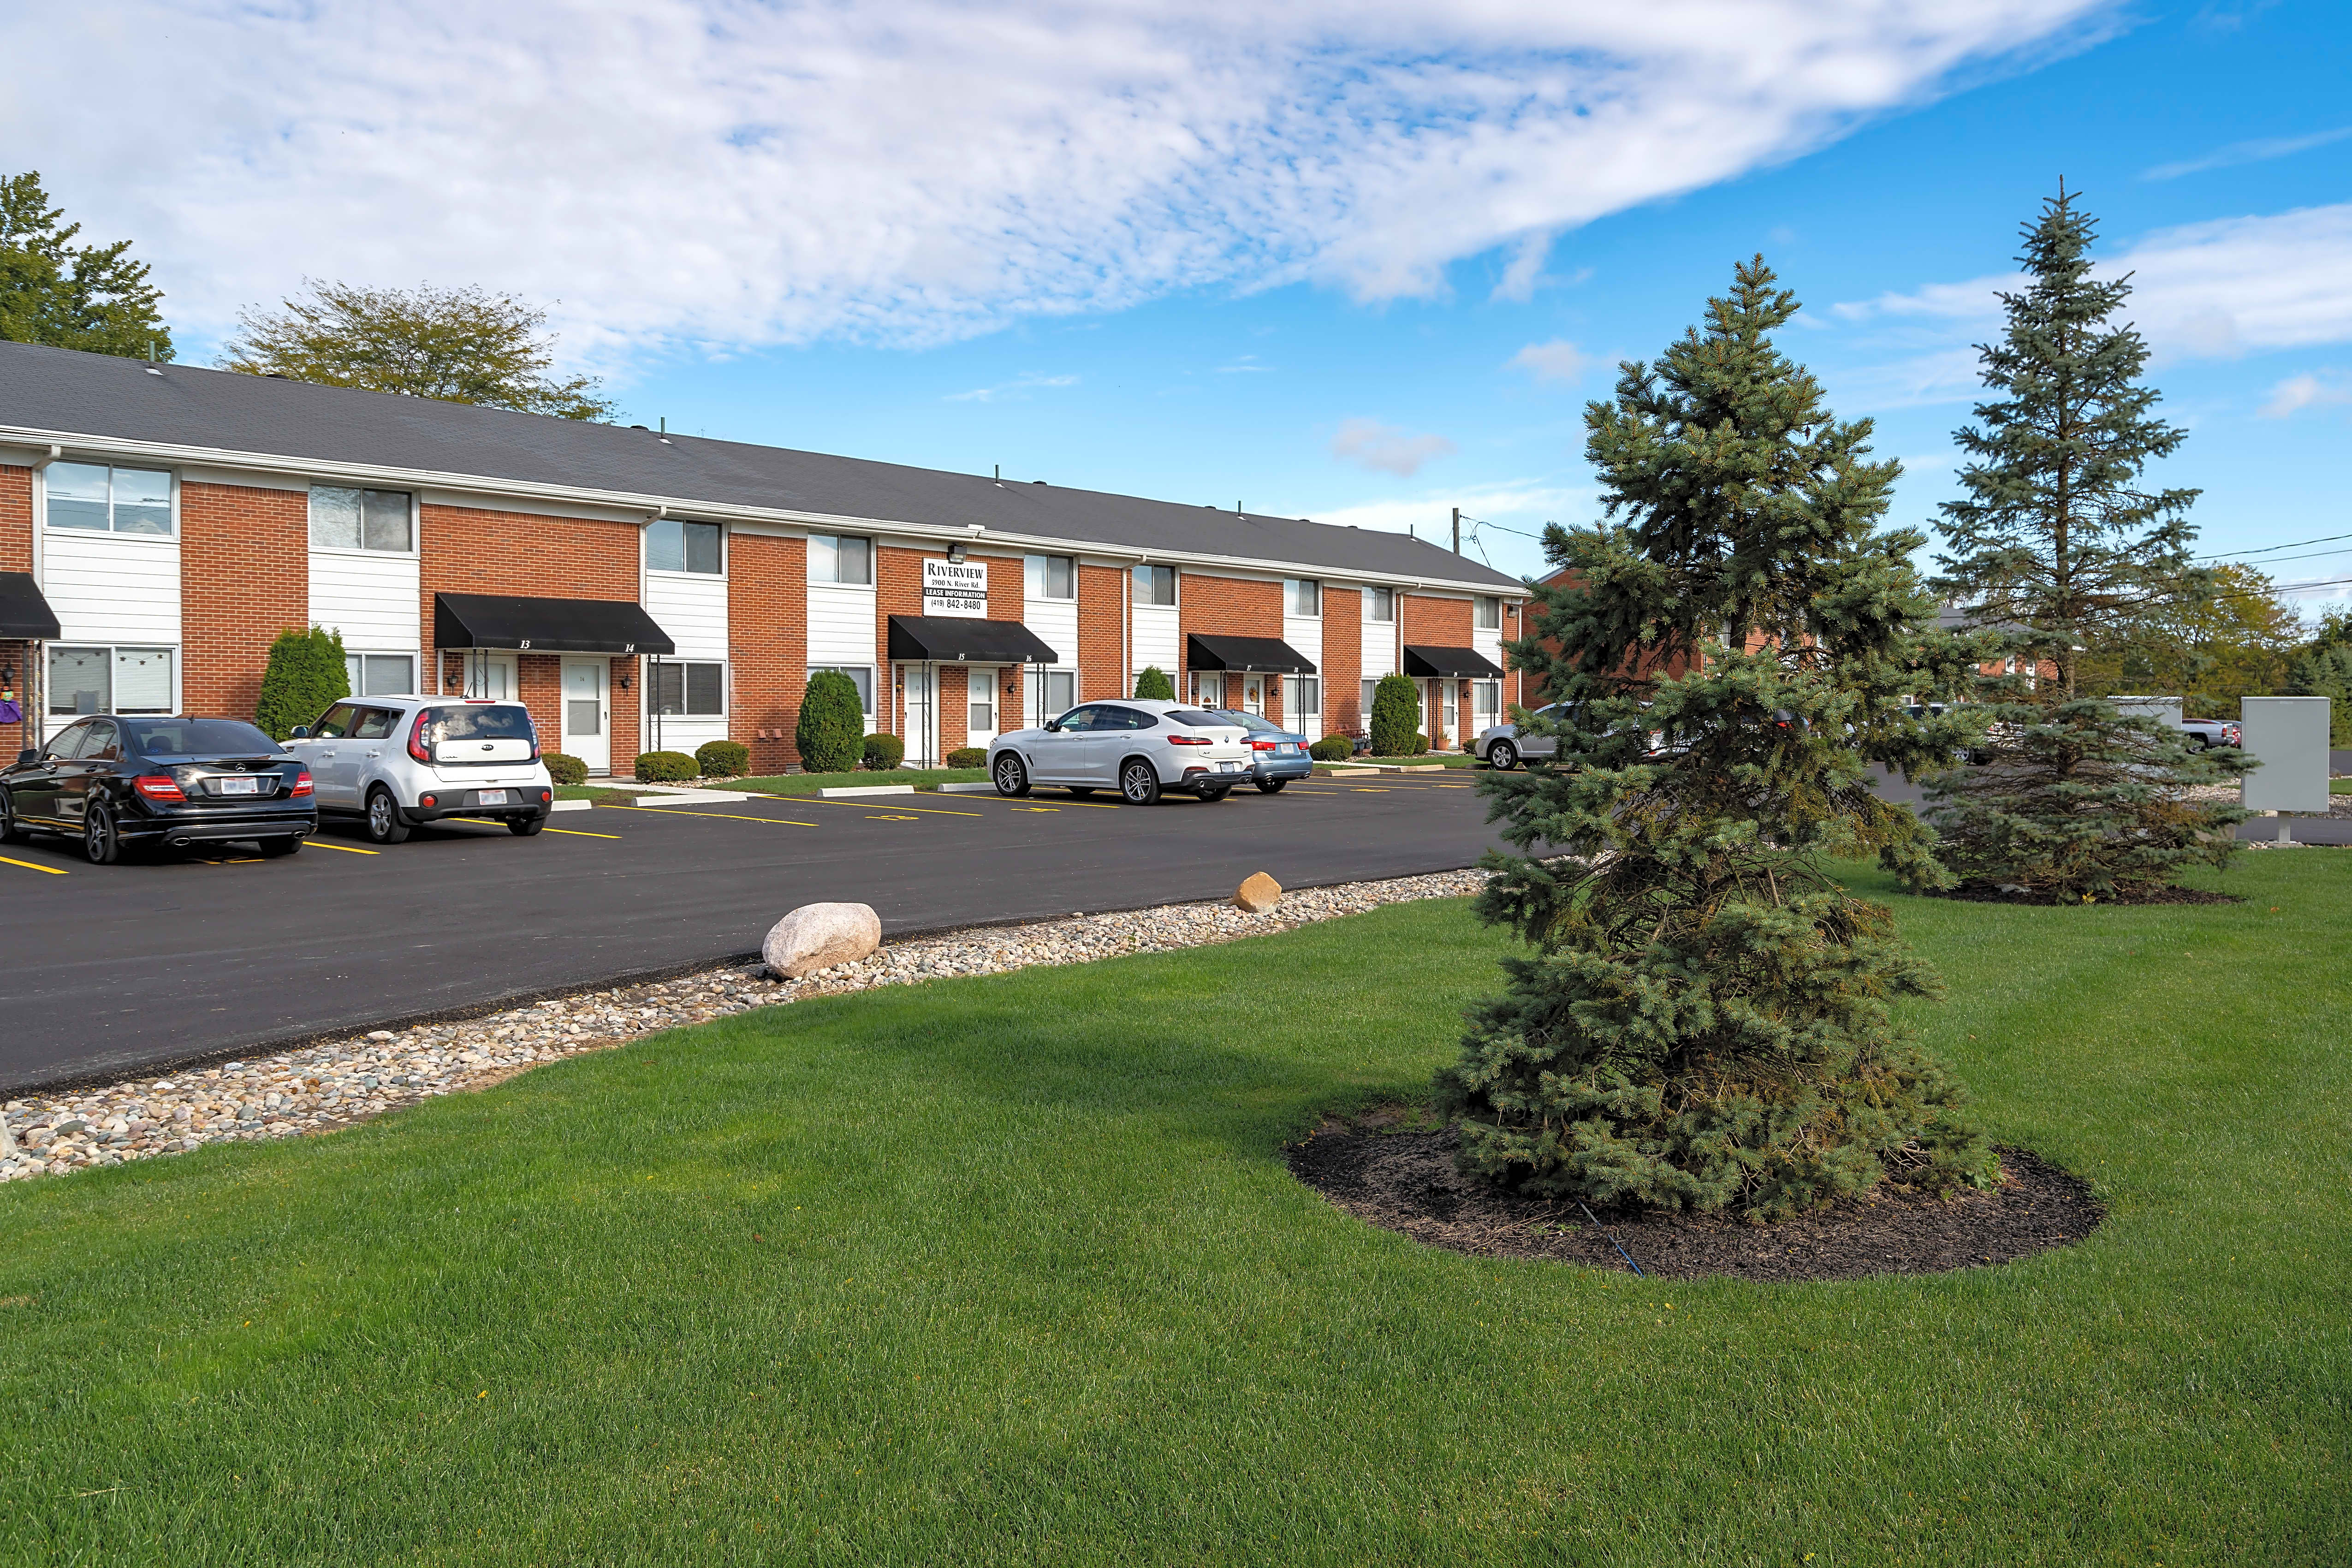 Apartments Near Stautzenberger College-Maumee Riverview Townhomes for Stautzenberger College-Maumee Students in Maumee, OH